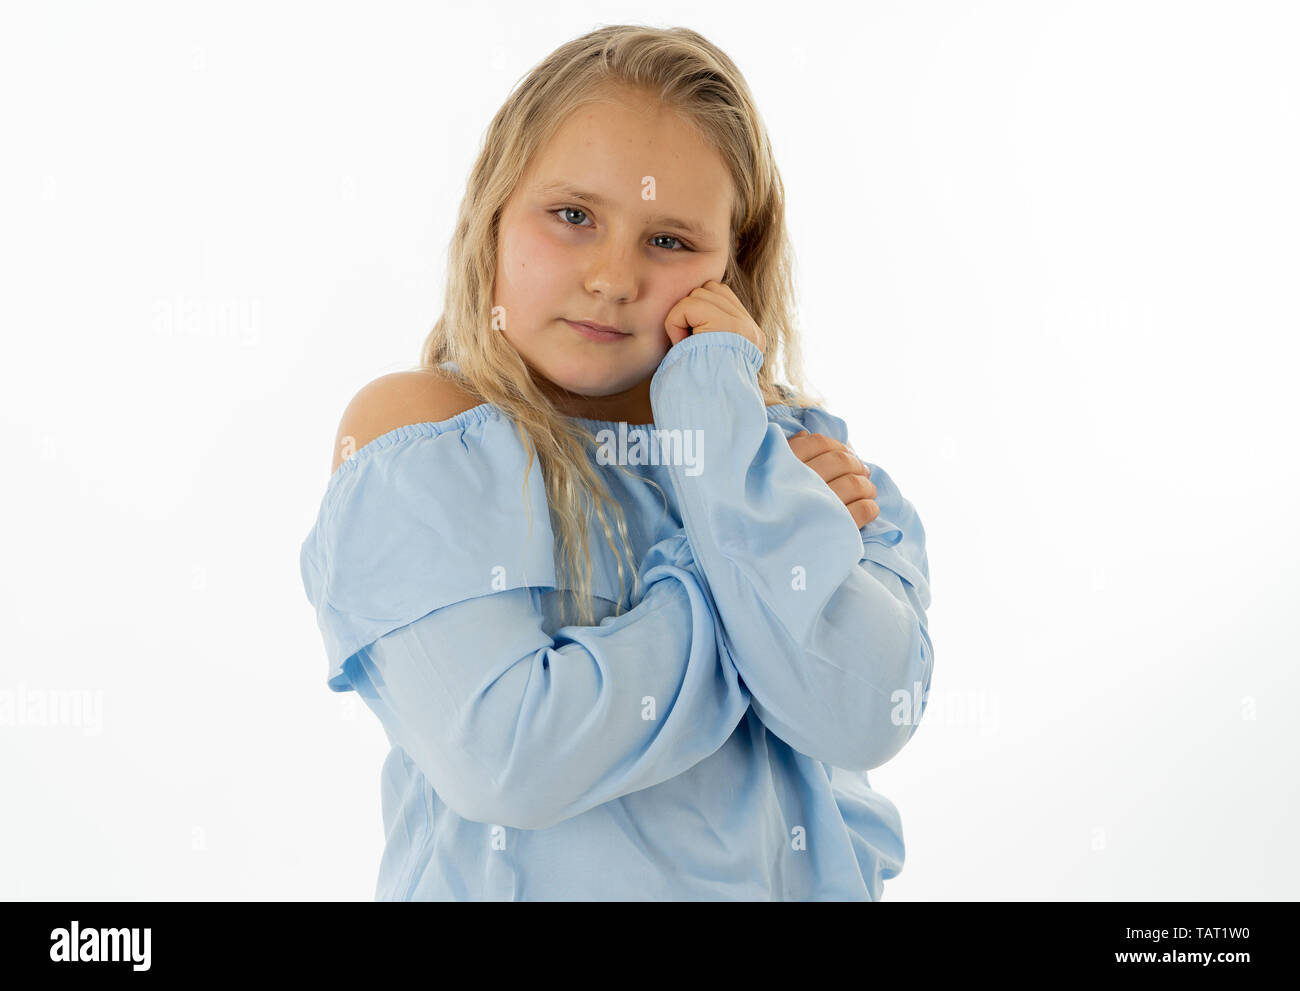 Close up portrait of a cute young shy girl looking timid at the camera on a white background. In facial expression photo concept - Stock Image